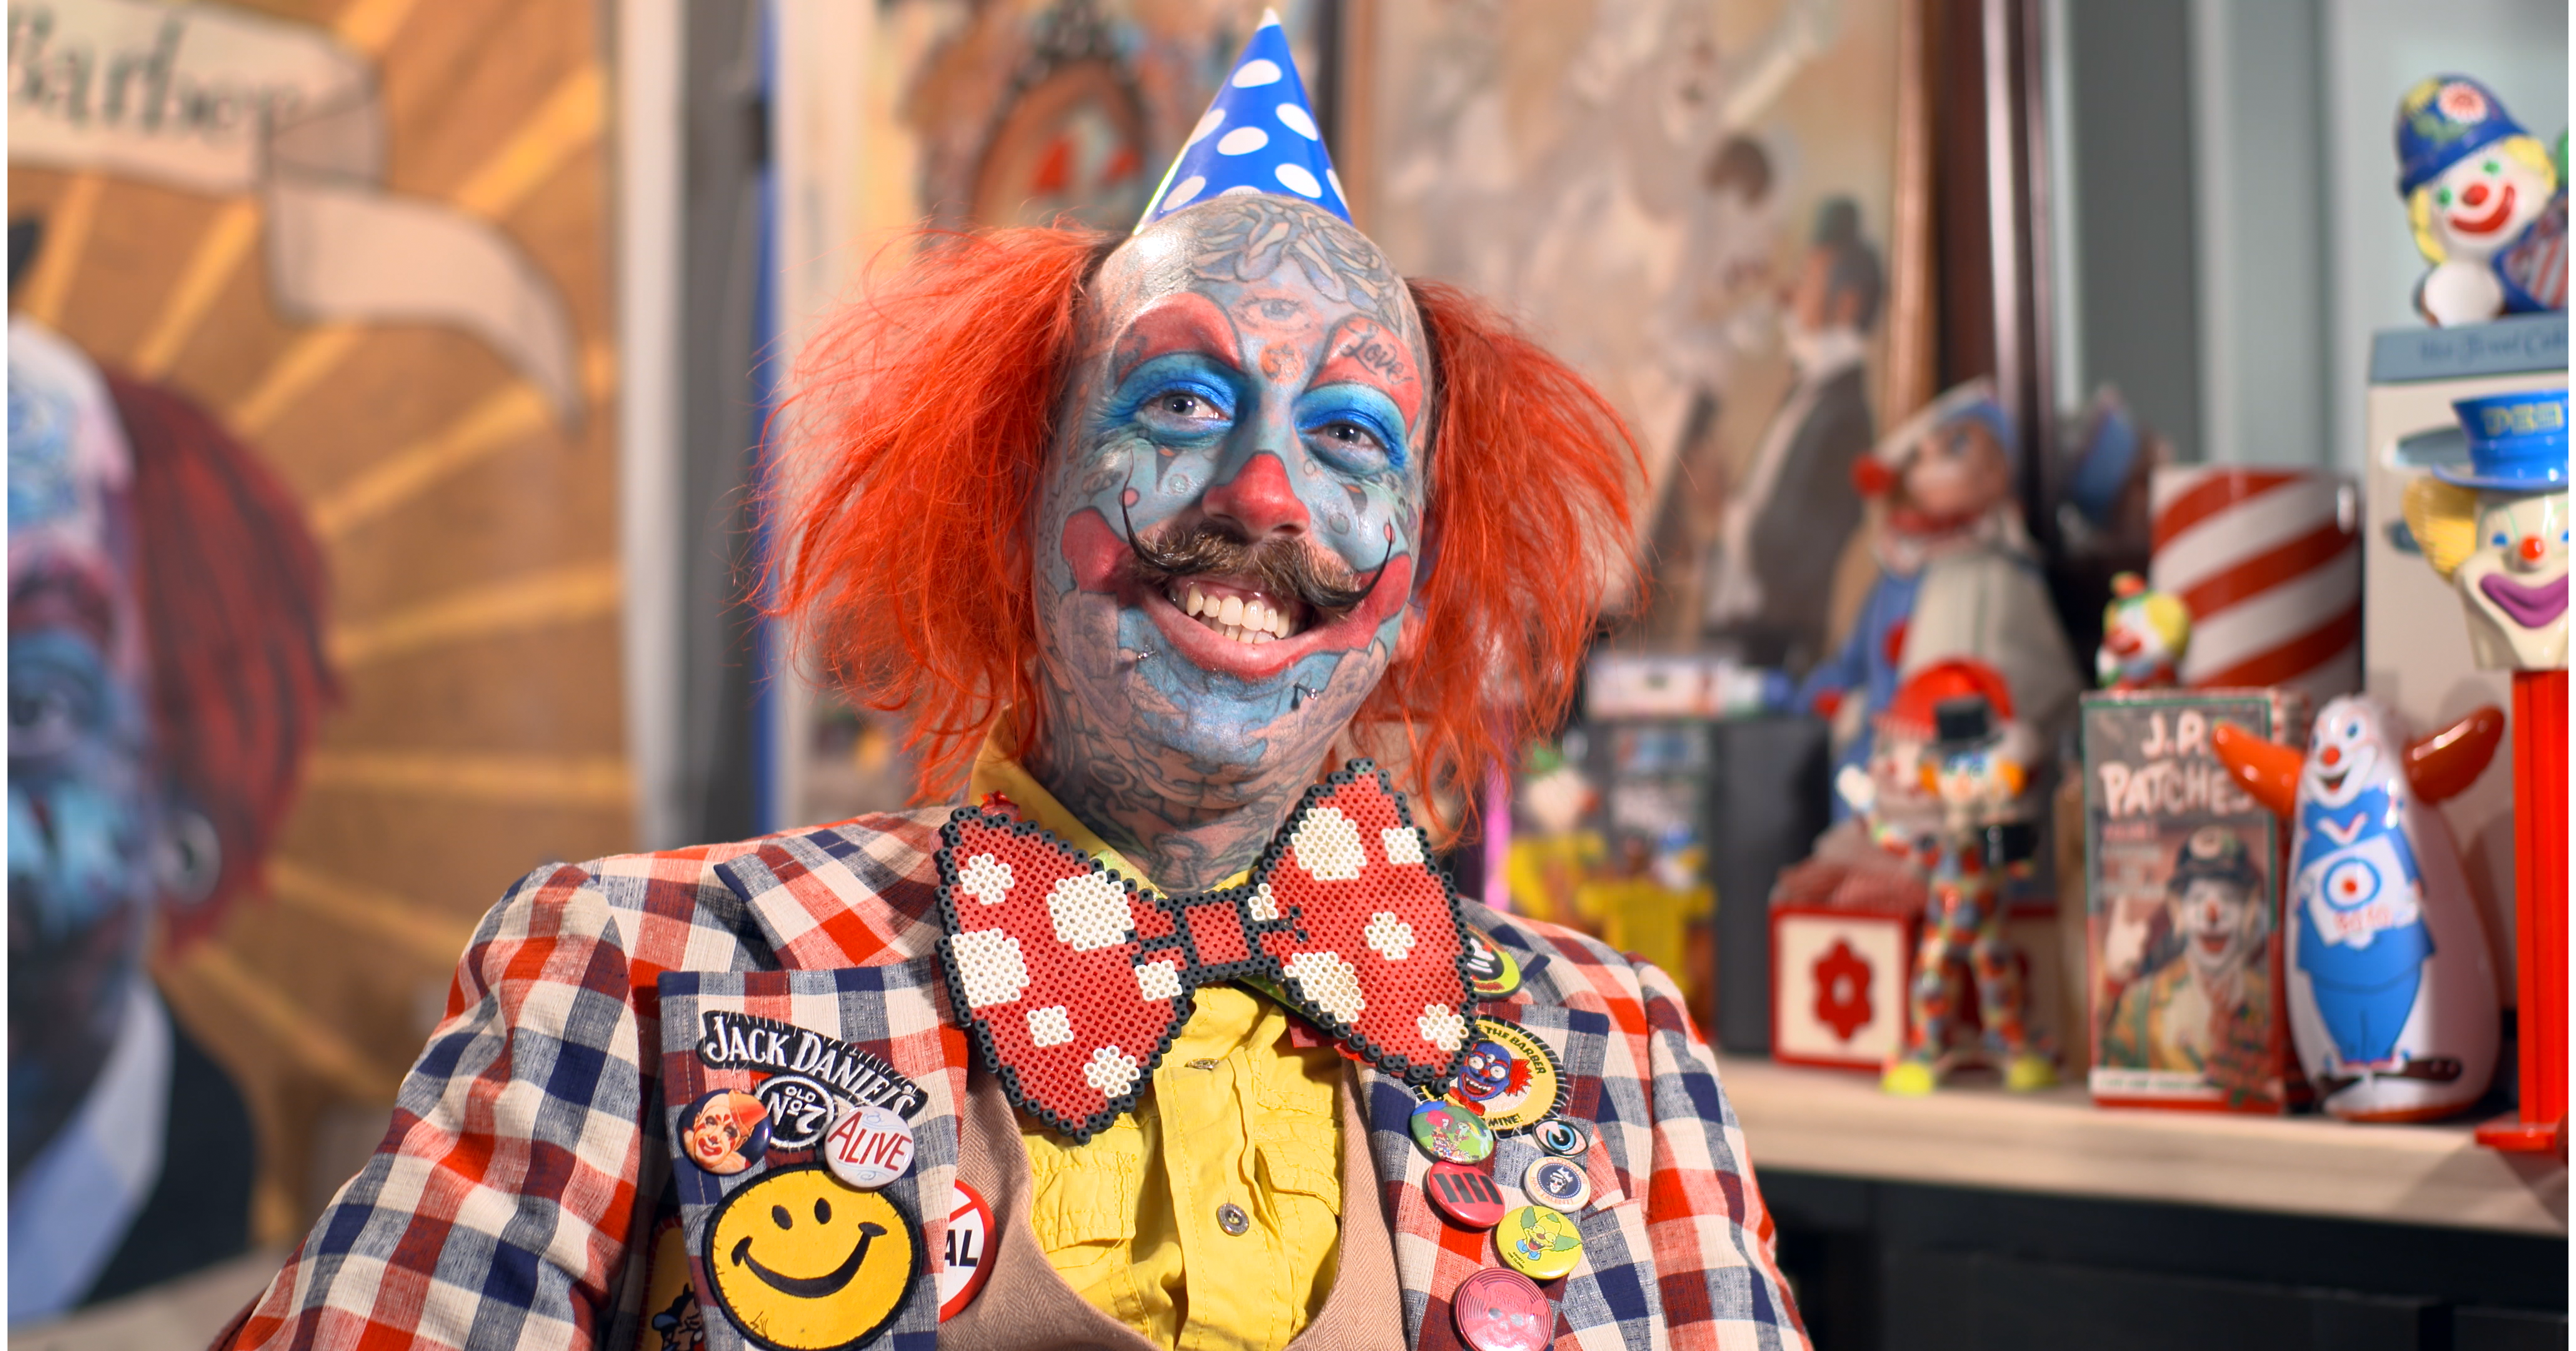 2d67dd62e Richie the Barber is the closest there is to a real-life clown. (Photo:  Yahoo Lifestyle)